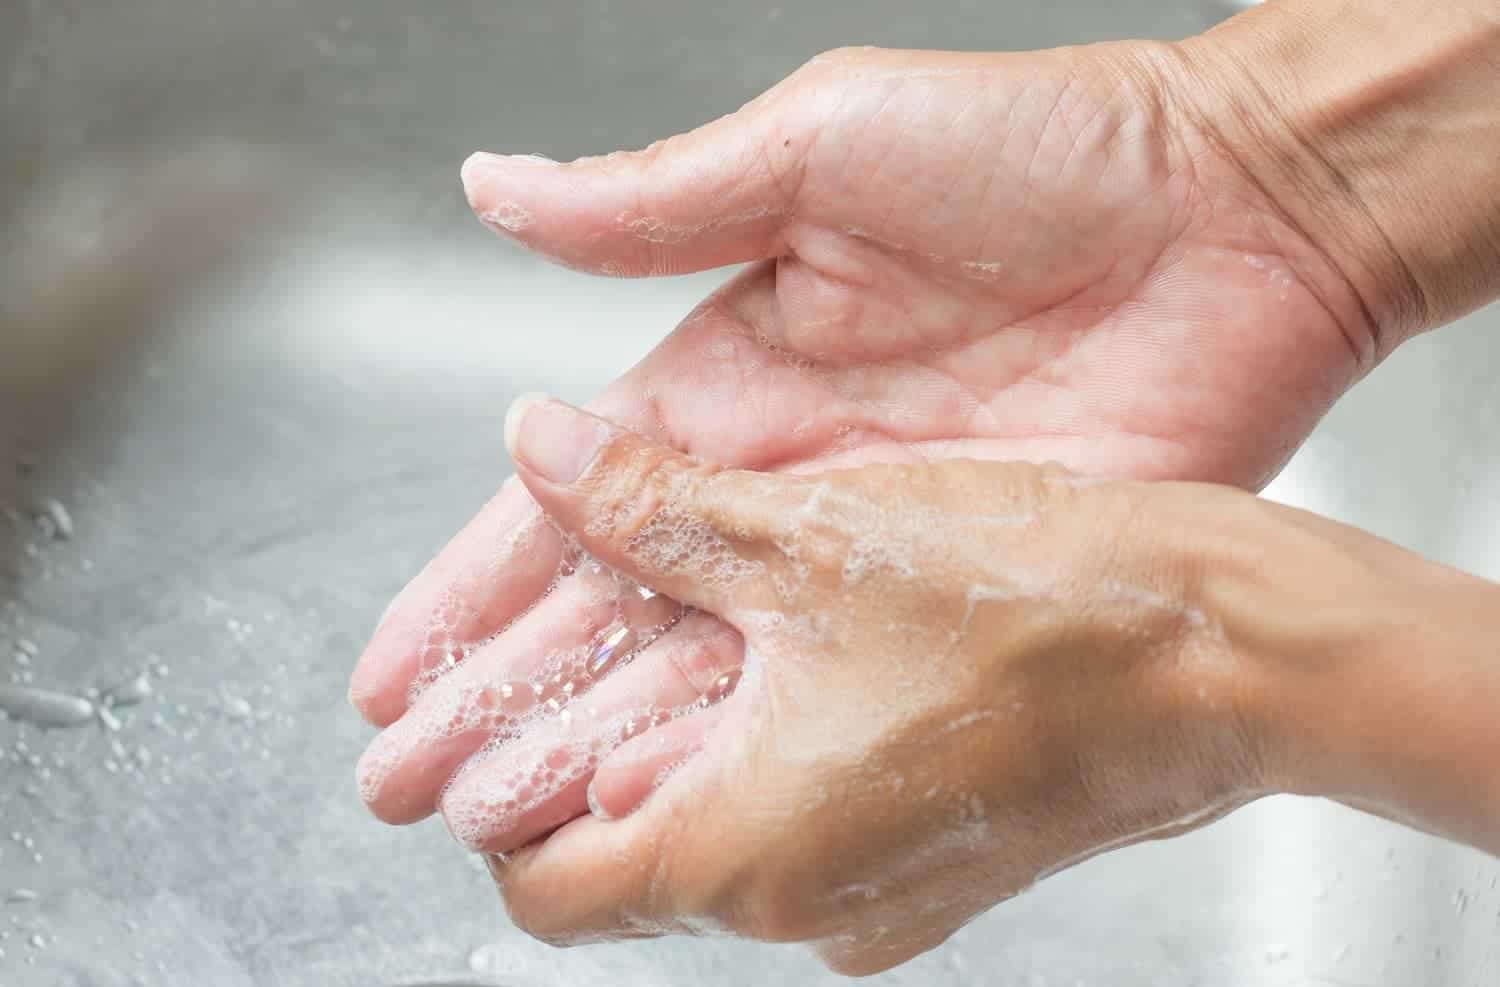 Handwashing patients